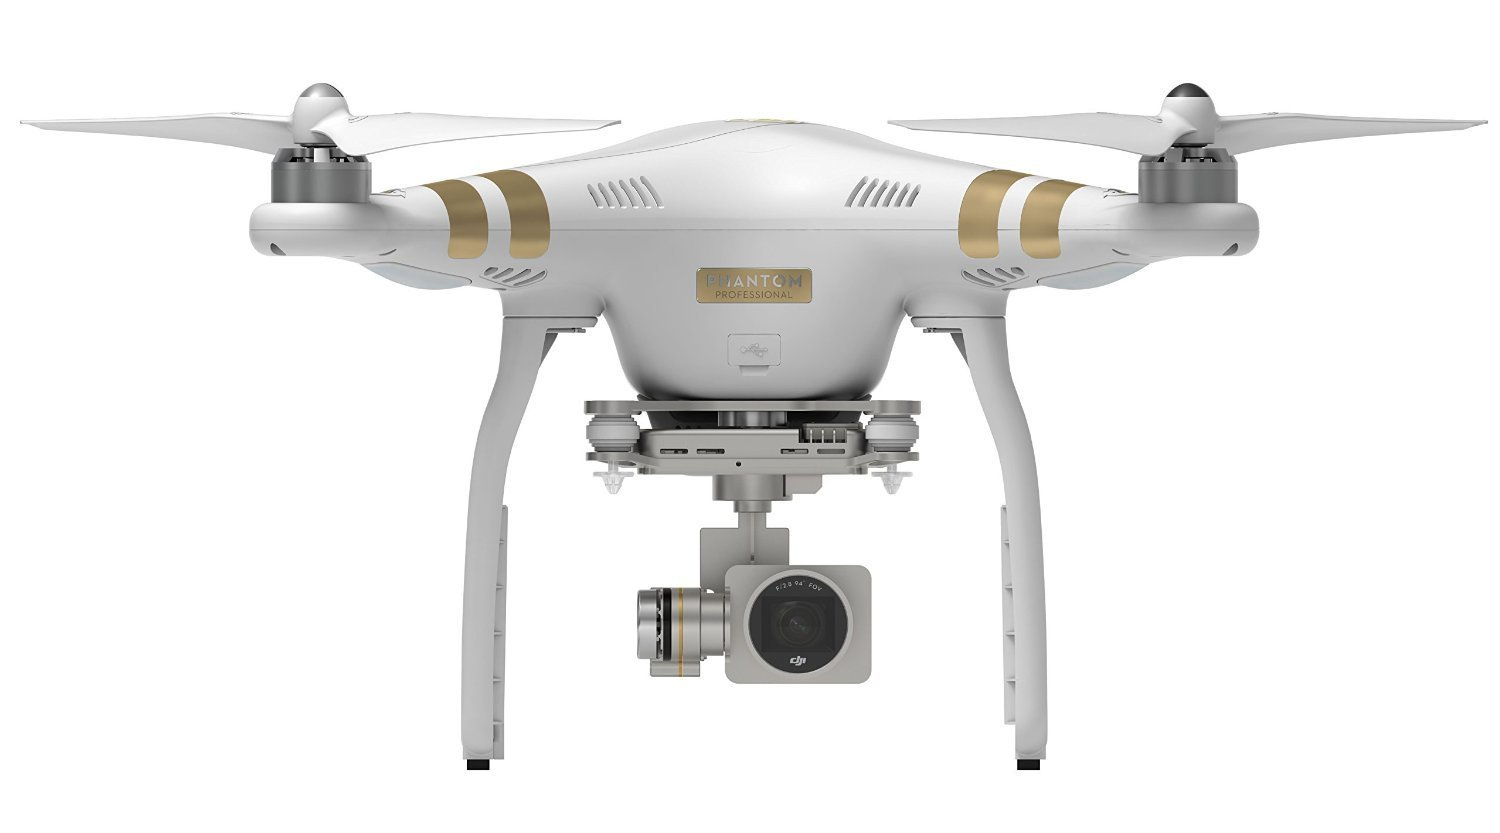 "Dji Phantom 3 Professional 4k UHD - 3-axis (pitch, roll, yaw)1/2.3"" CMOS Effective pixels: 12.4 M (total pixels: 12.76 M)Max Flight Time Approx 23 minutesMax Transmission: Distance FCC Compliant: 3.1 mi (5 km)CE Compliant: 2.2 mi (3.5 km)(Unobstructed, free of interferenceUHD: 4096x2160p 24/25, 3840x2160p 24/25/30FHD: 1920x1080p 24/25/30/48/50/60HD: 1280x720p 24/25/30/48/50/60"